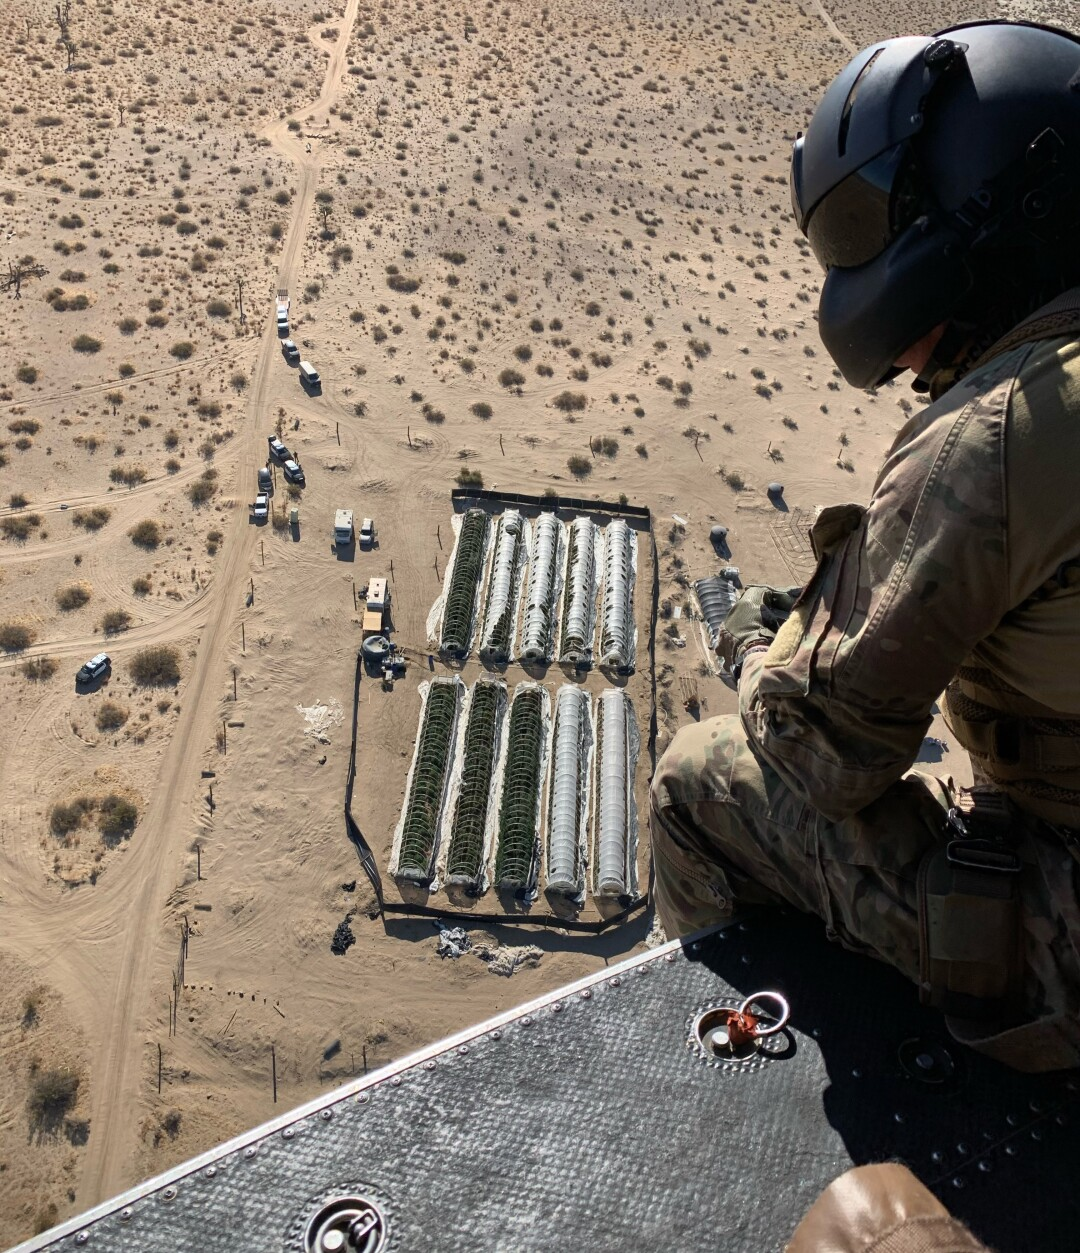 An aerial image of three illegal marijuana grow farms discovered in the Antelope Valley.